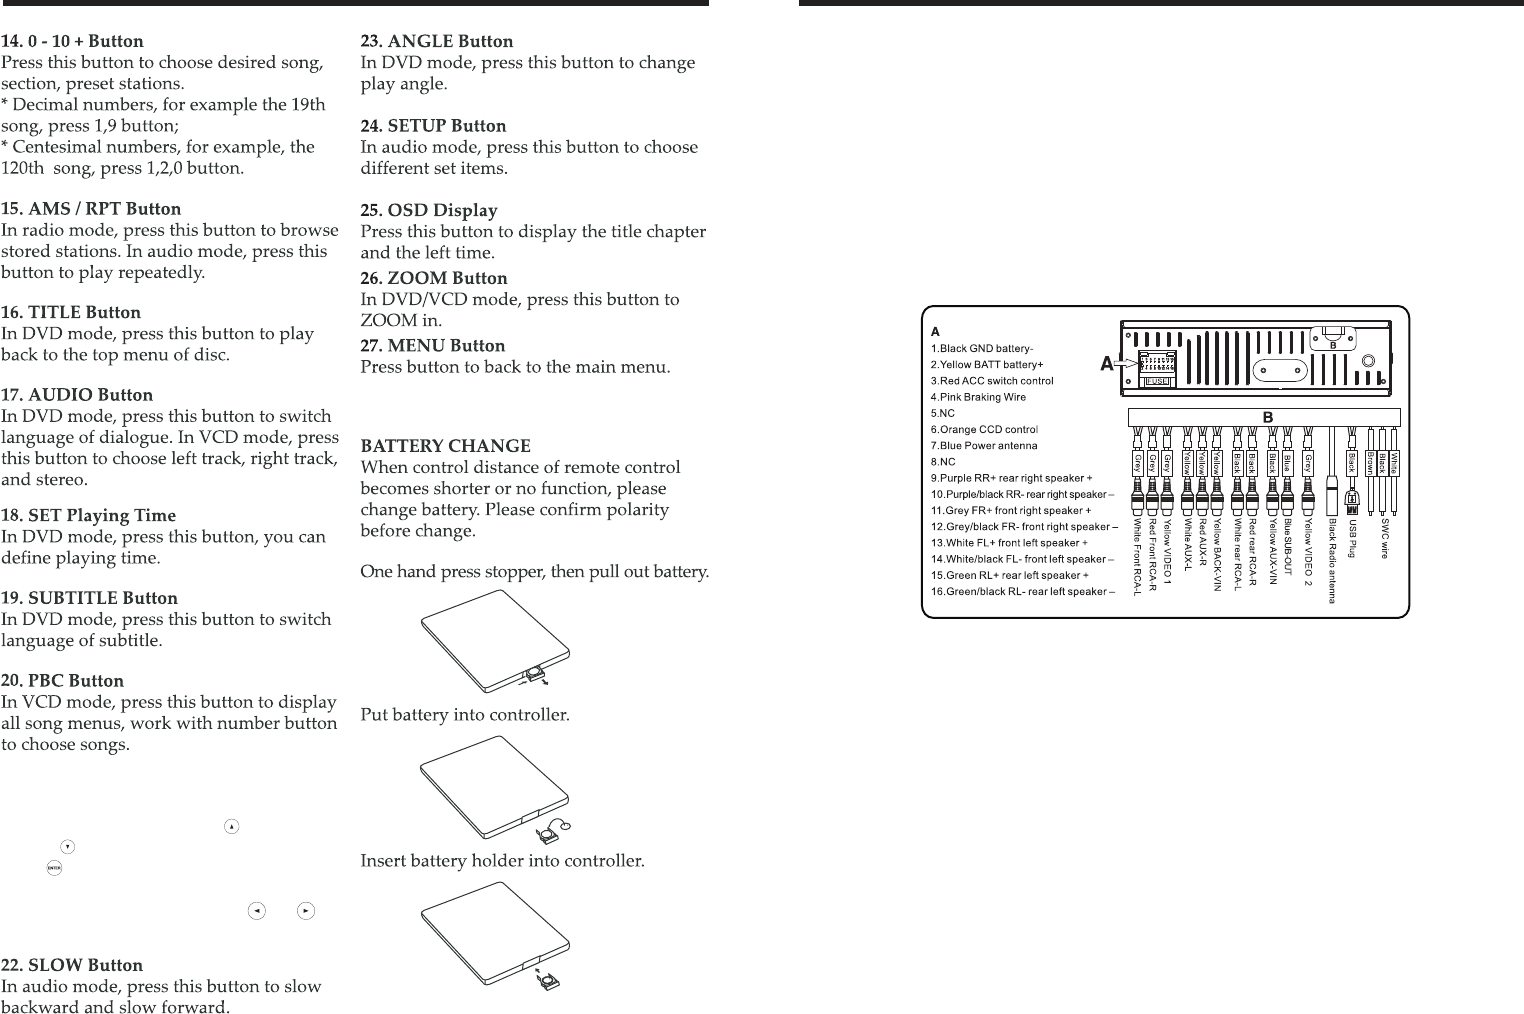 page 6 of boss audio systems car stereo system bv8963 user guide 21 up down left right enter button